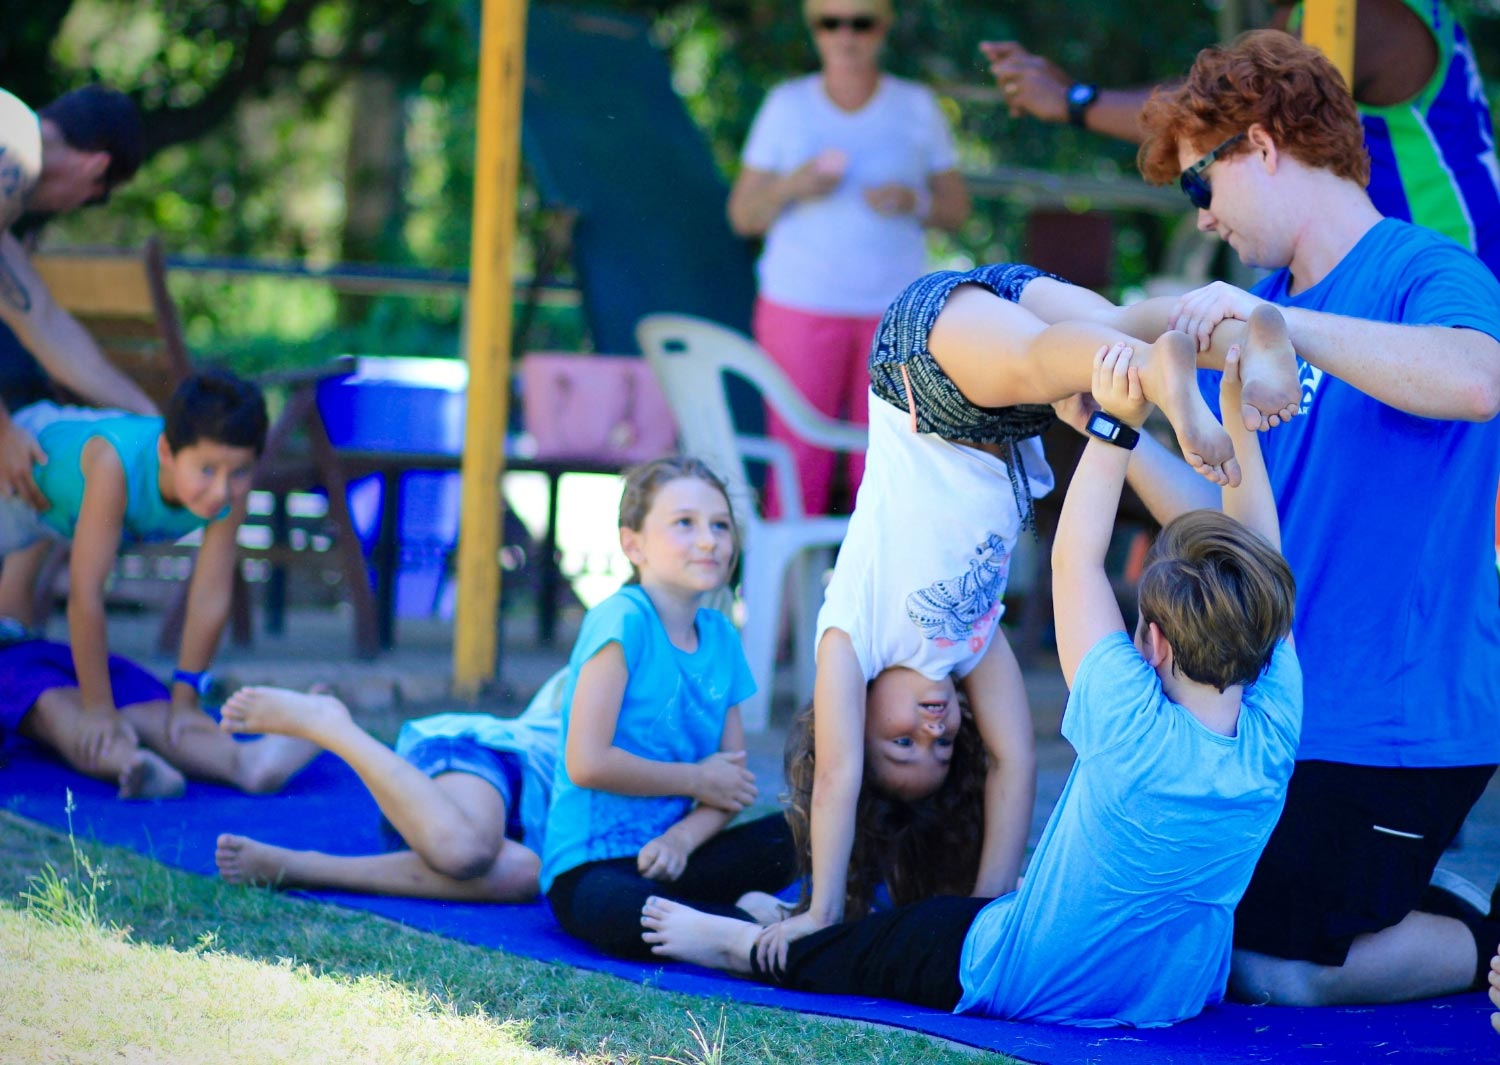 circus-arts-brisbane-sydney-flying-trapeze-mega-mix-circus-kids-school-holiday-activities-programs-classes-8